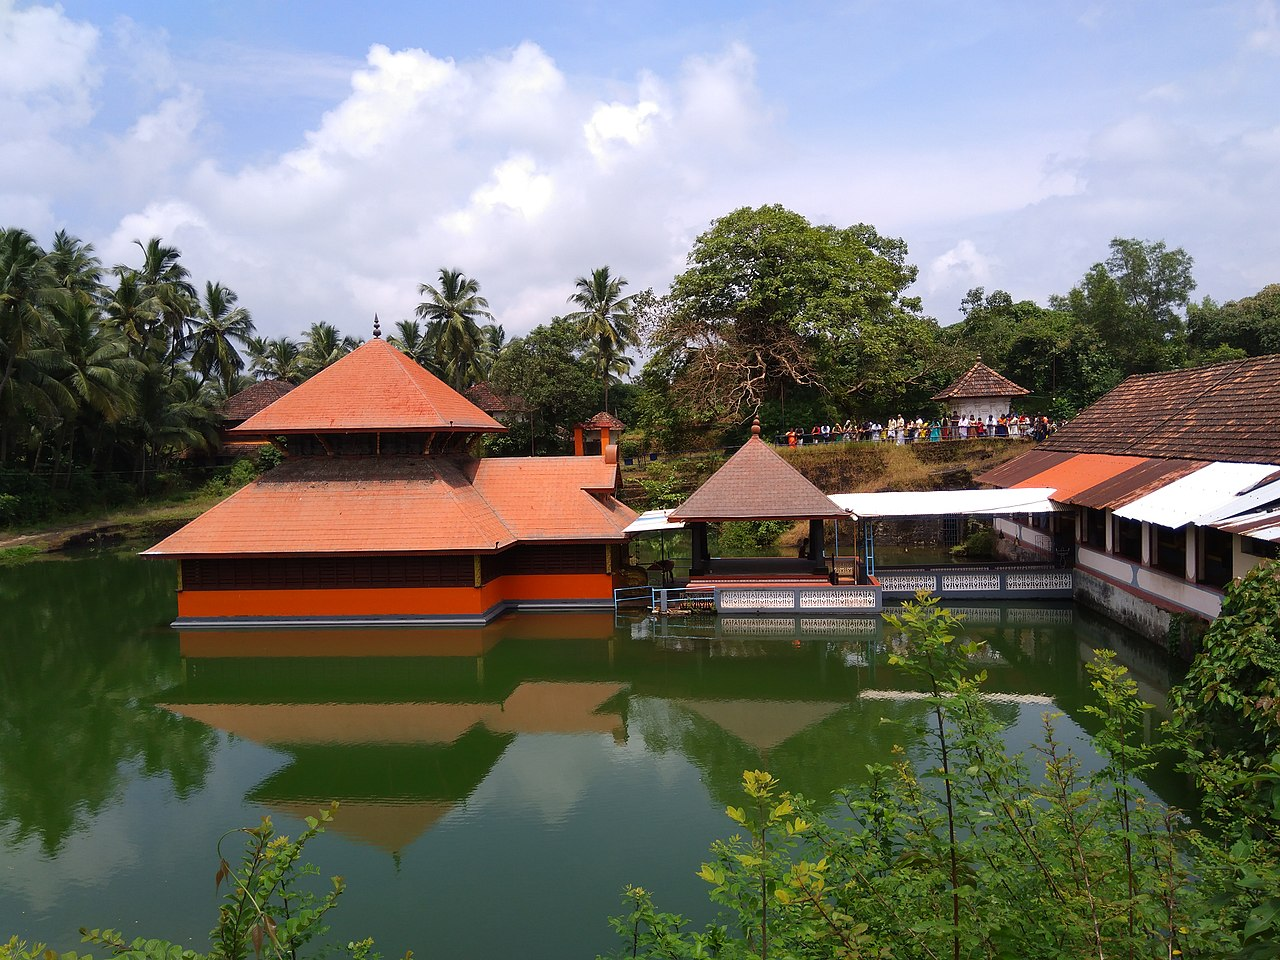 Famous Temple in Kerala-Ananthapura Lake Temple, Kasargod